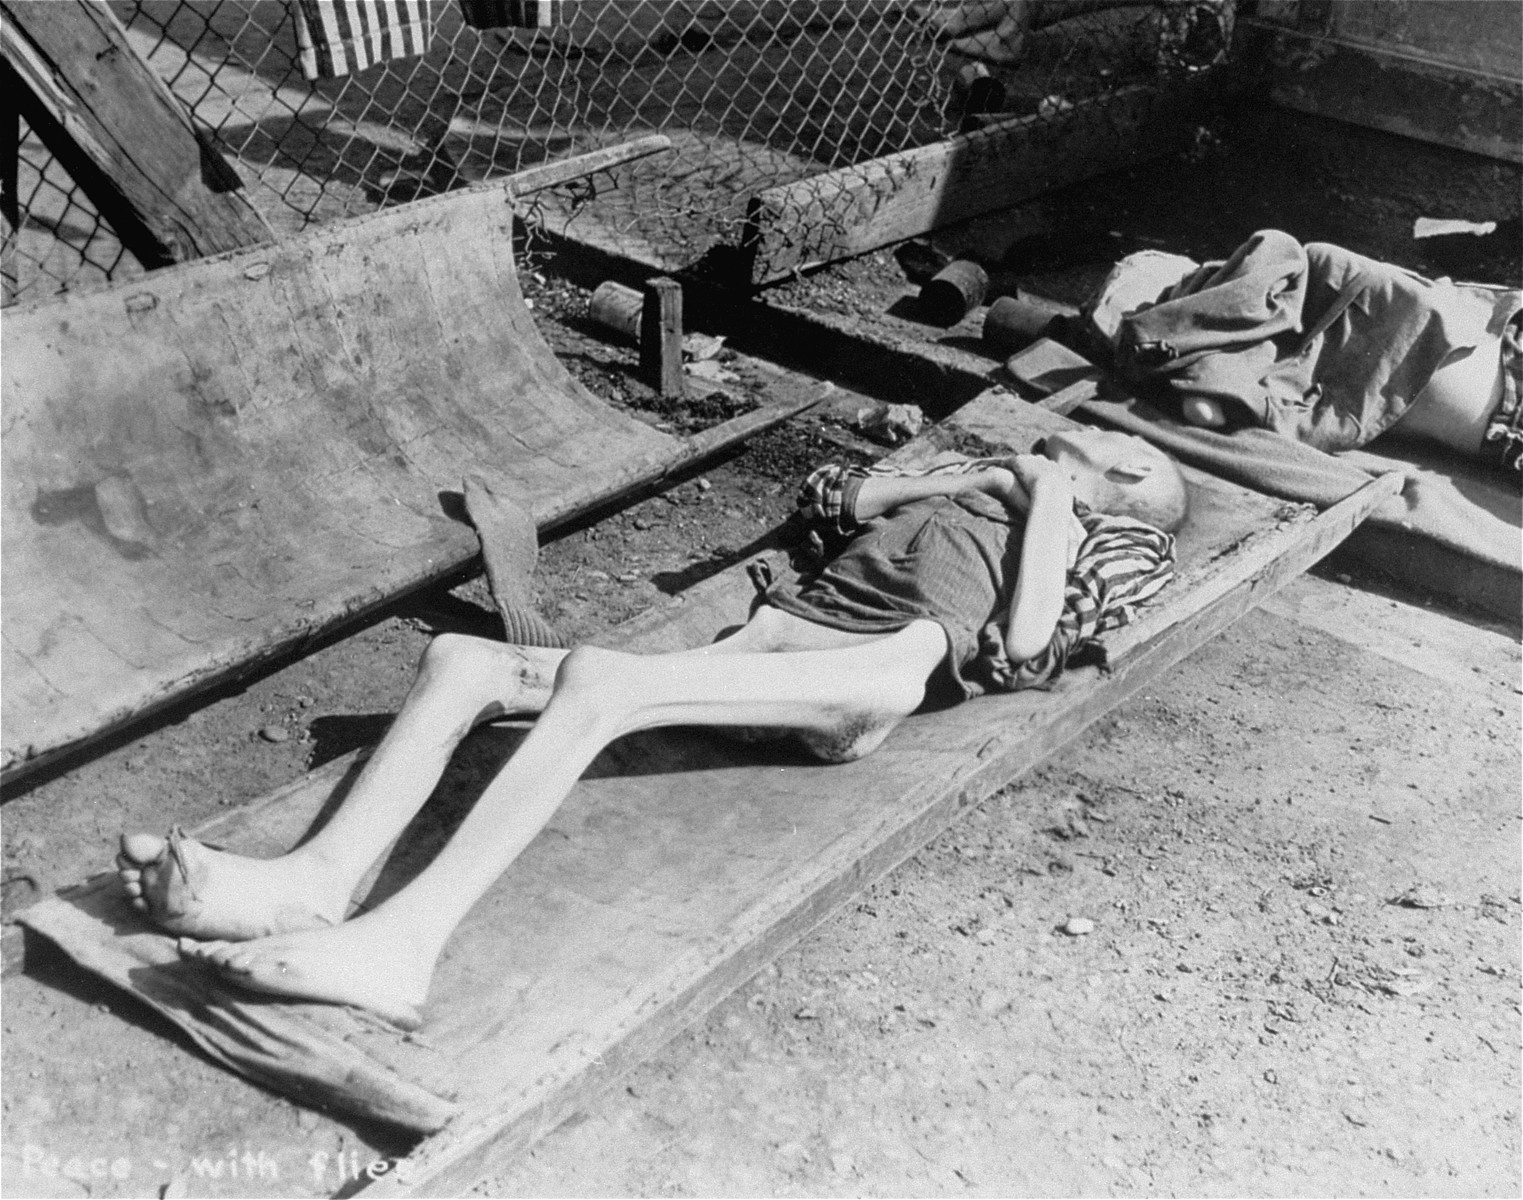 The emaciated, partially-clothed corpse of an inmate at the Dachau concentration camp lies outside on a stretcher awaiting removal for burial.